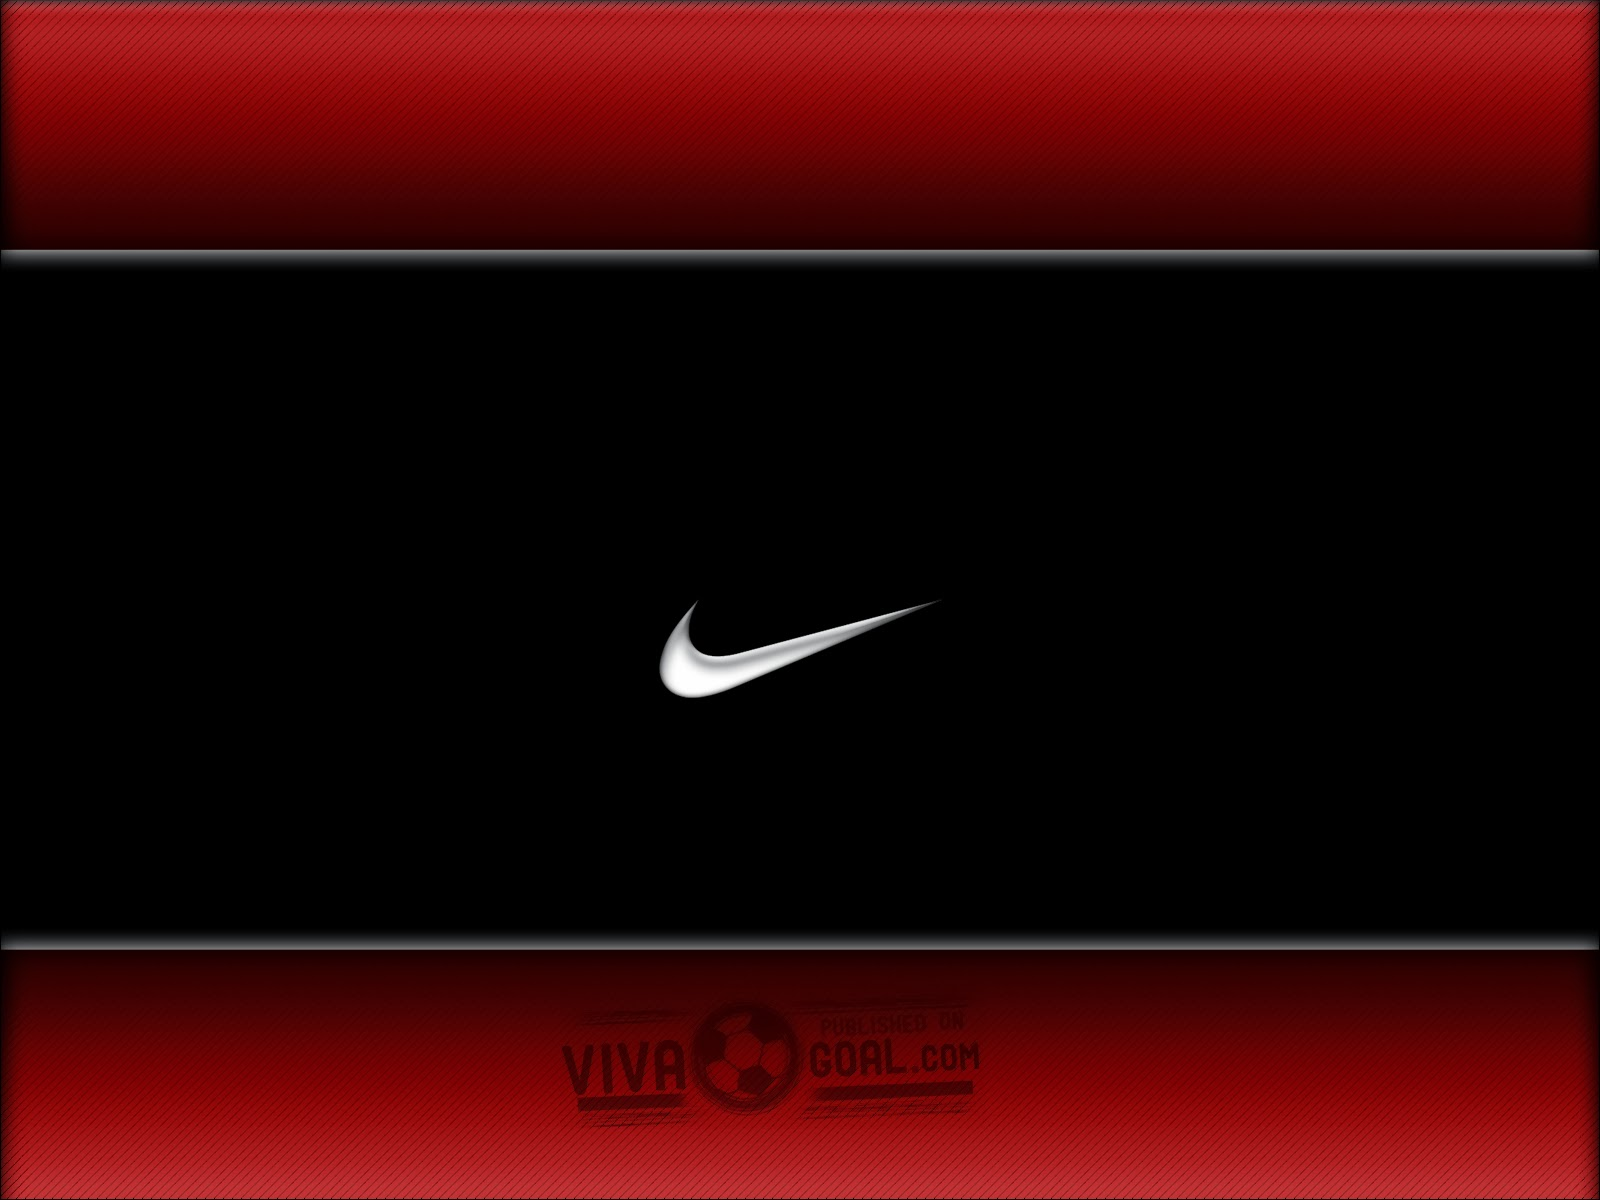 Nike football wallpaper computer   beautiful desktop wallpapers 2014 1600x1200